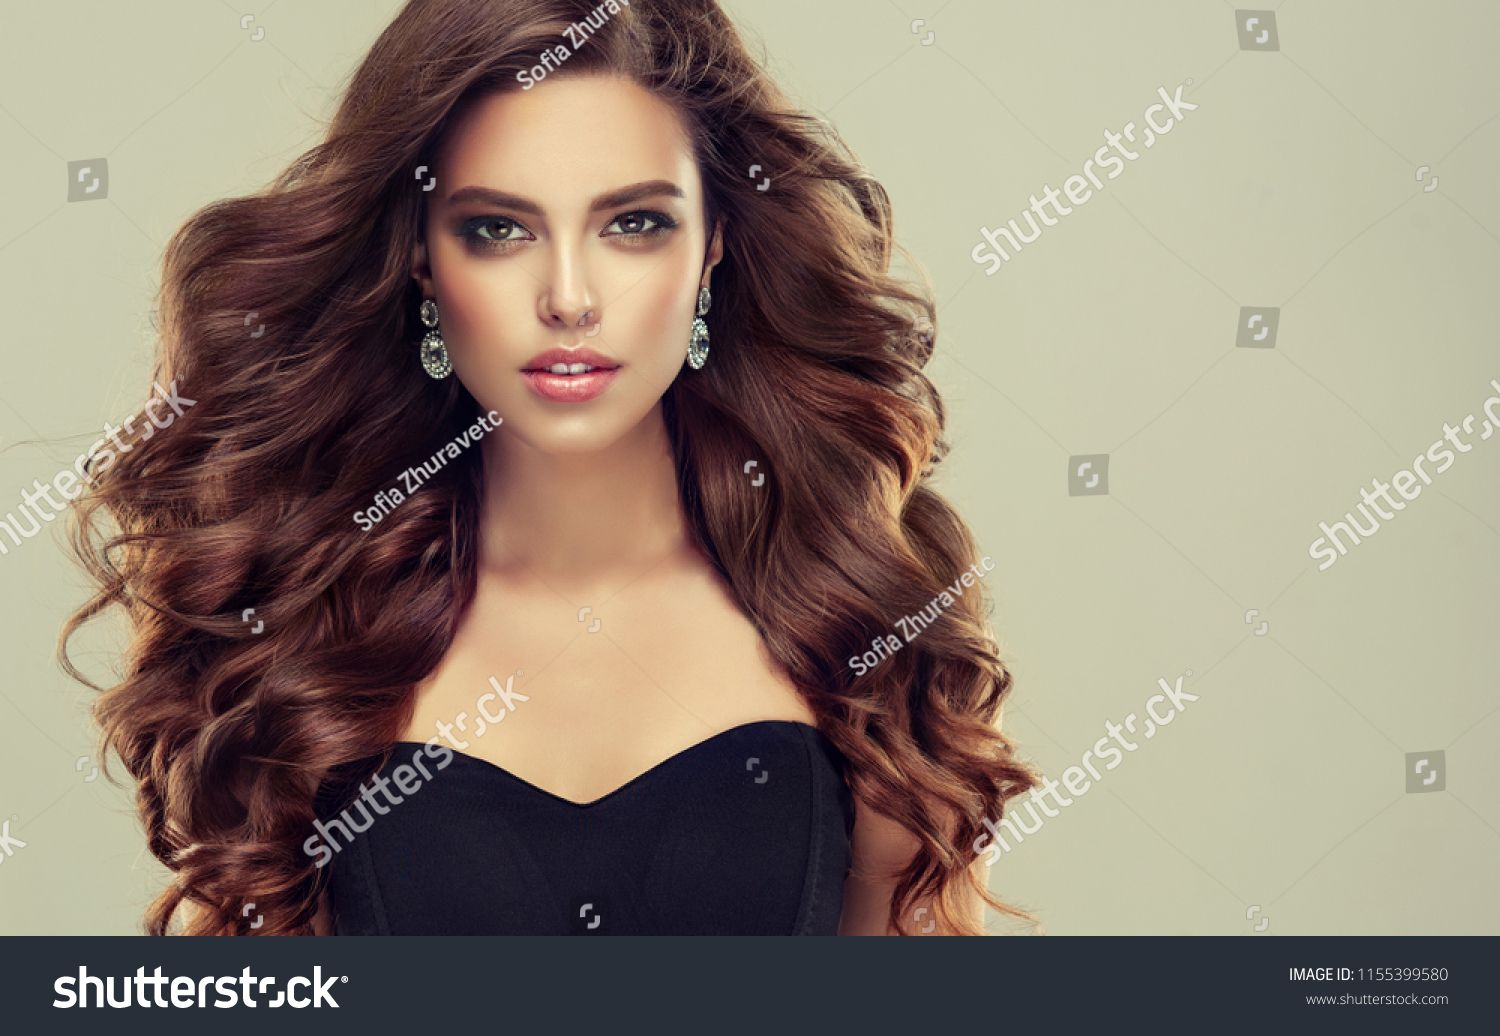 Brunette Woman With Long Healthy And Shiny Curly Hair